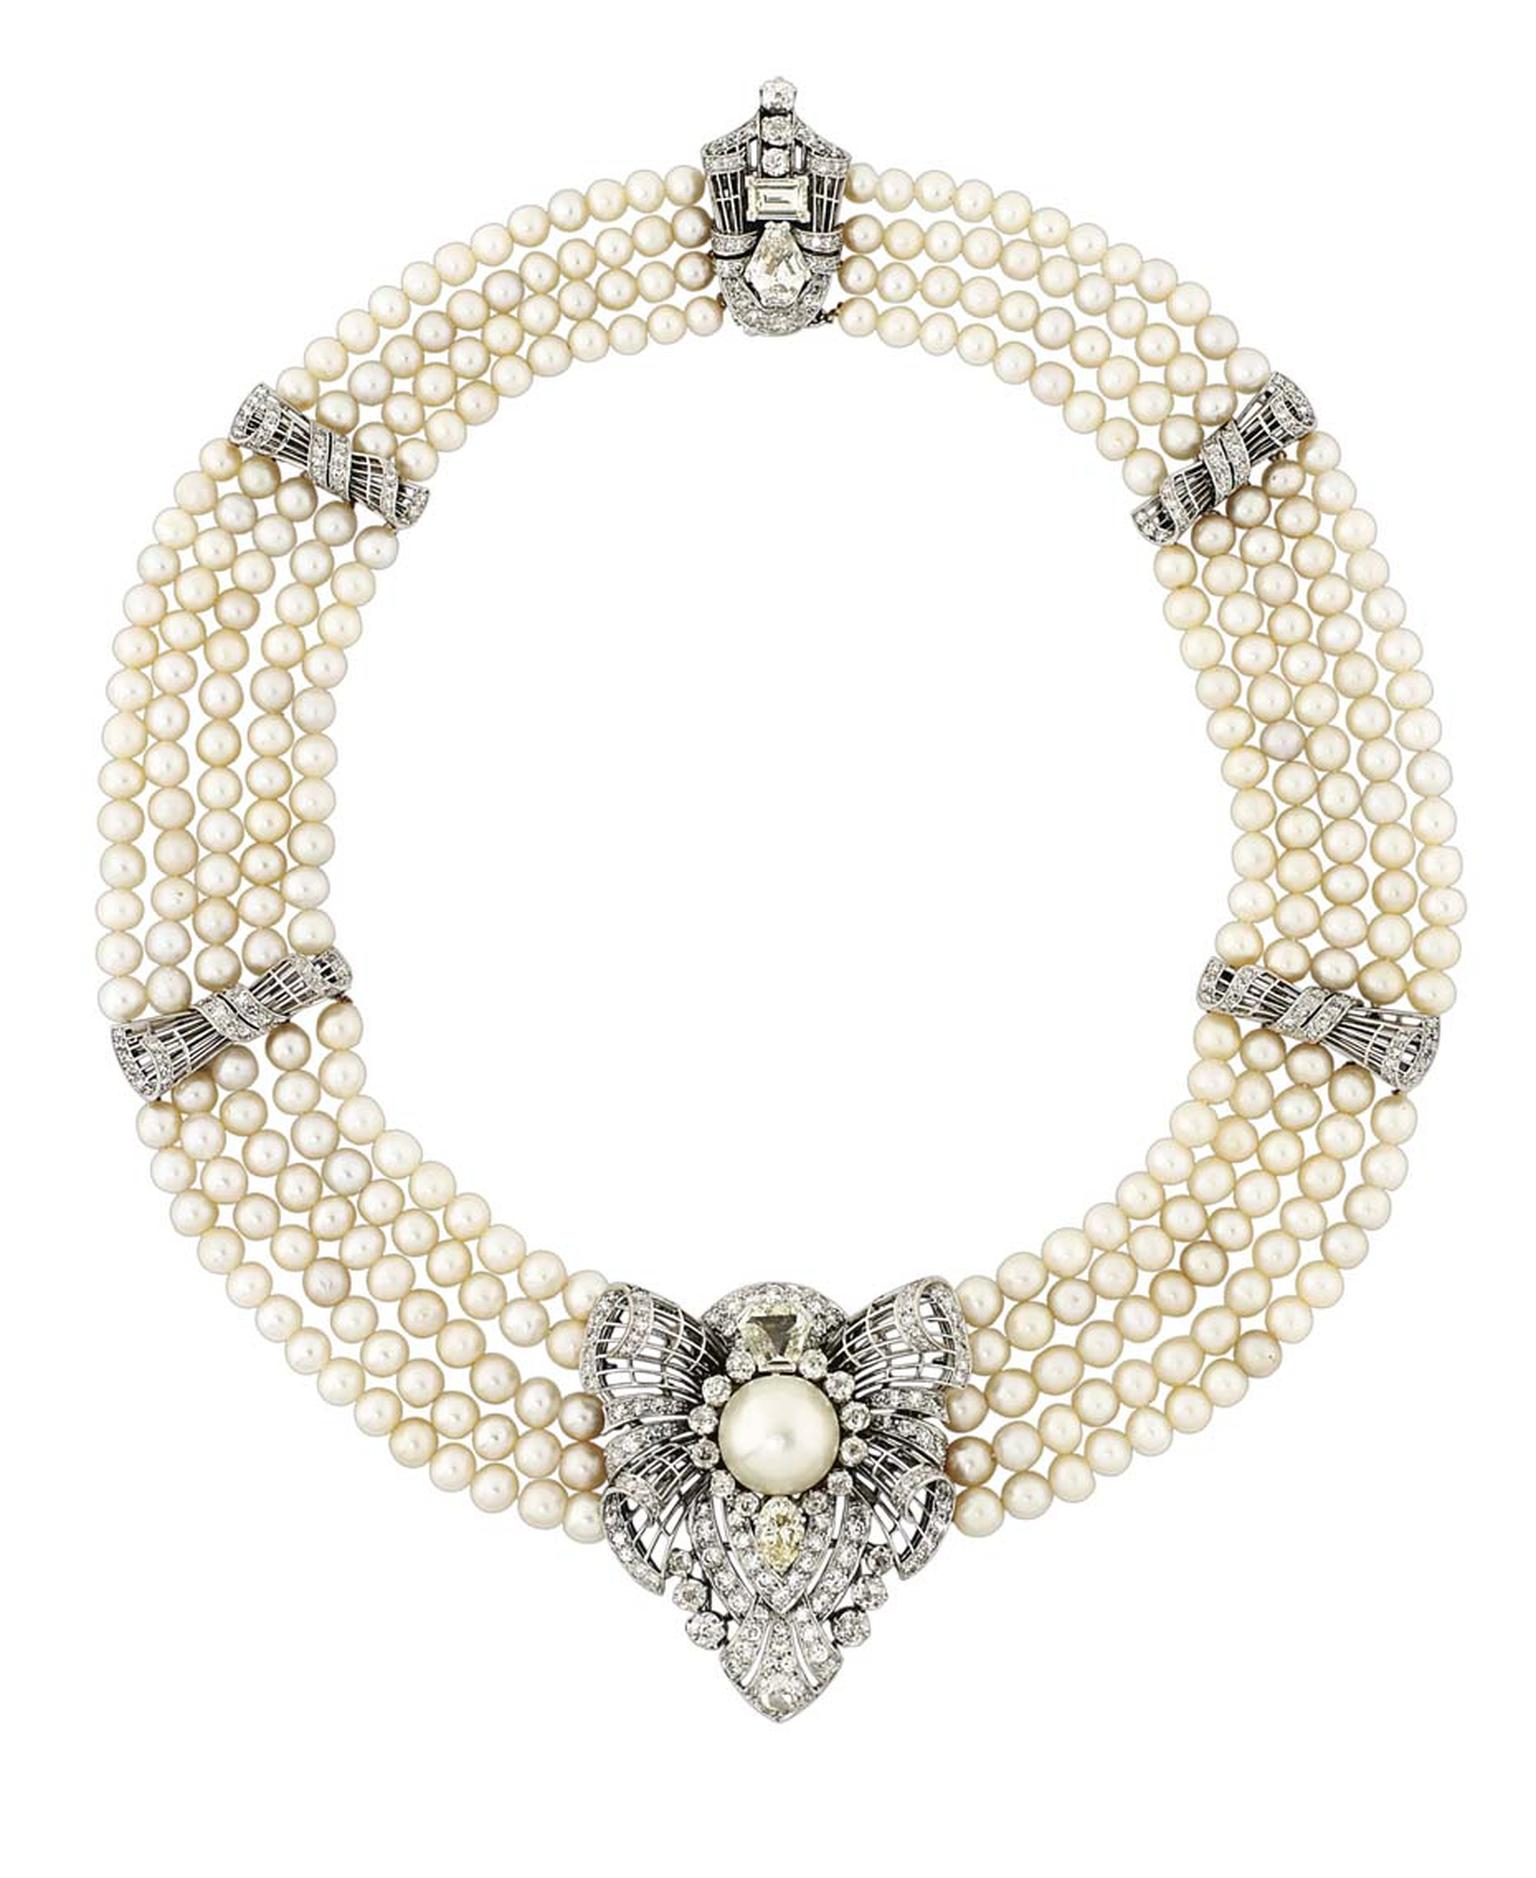 This five-strand natural pearl necklace with a central diamond-set pendant that can be removed and worn as a brooch, sold for £182,500 (estimate: £80,000-100,000) sold at Christies in November 2014.